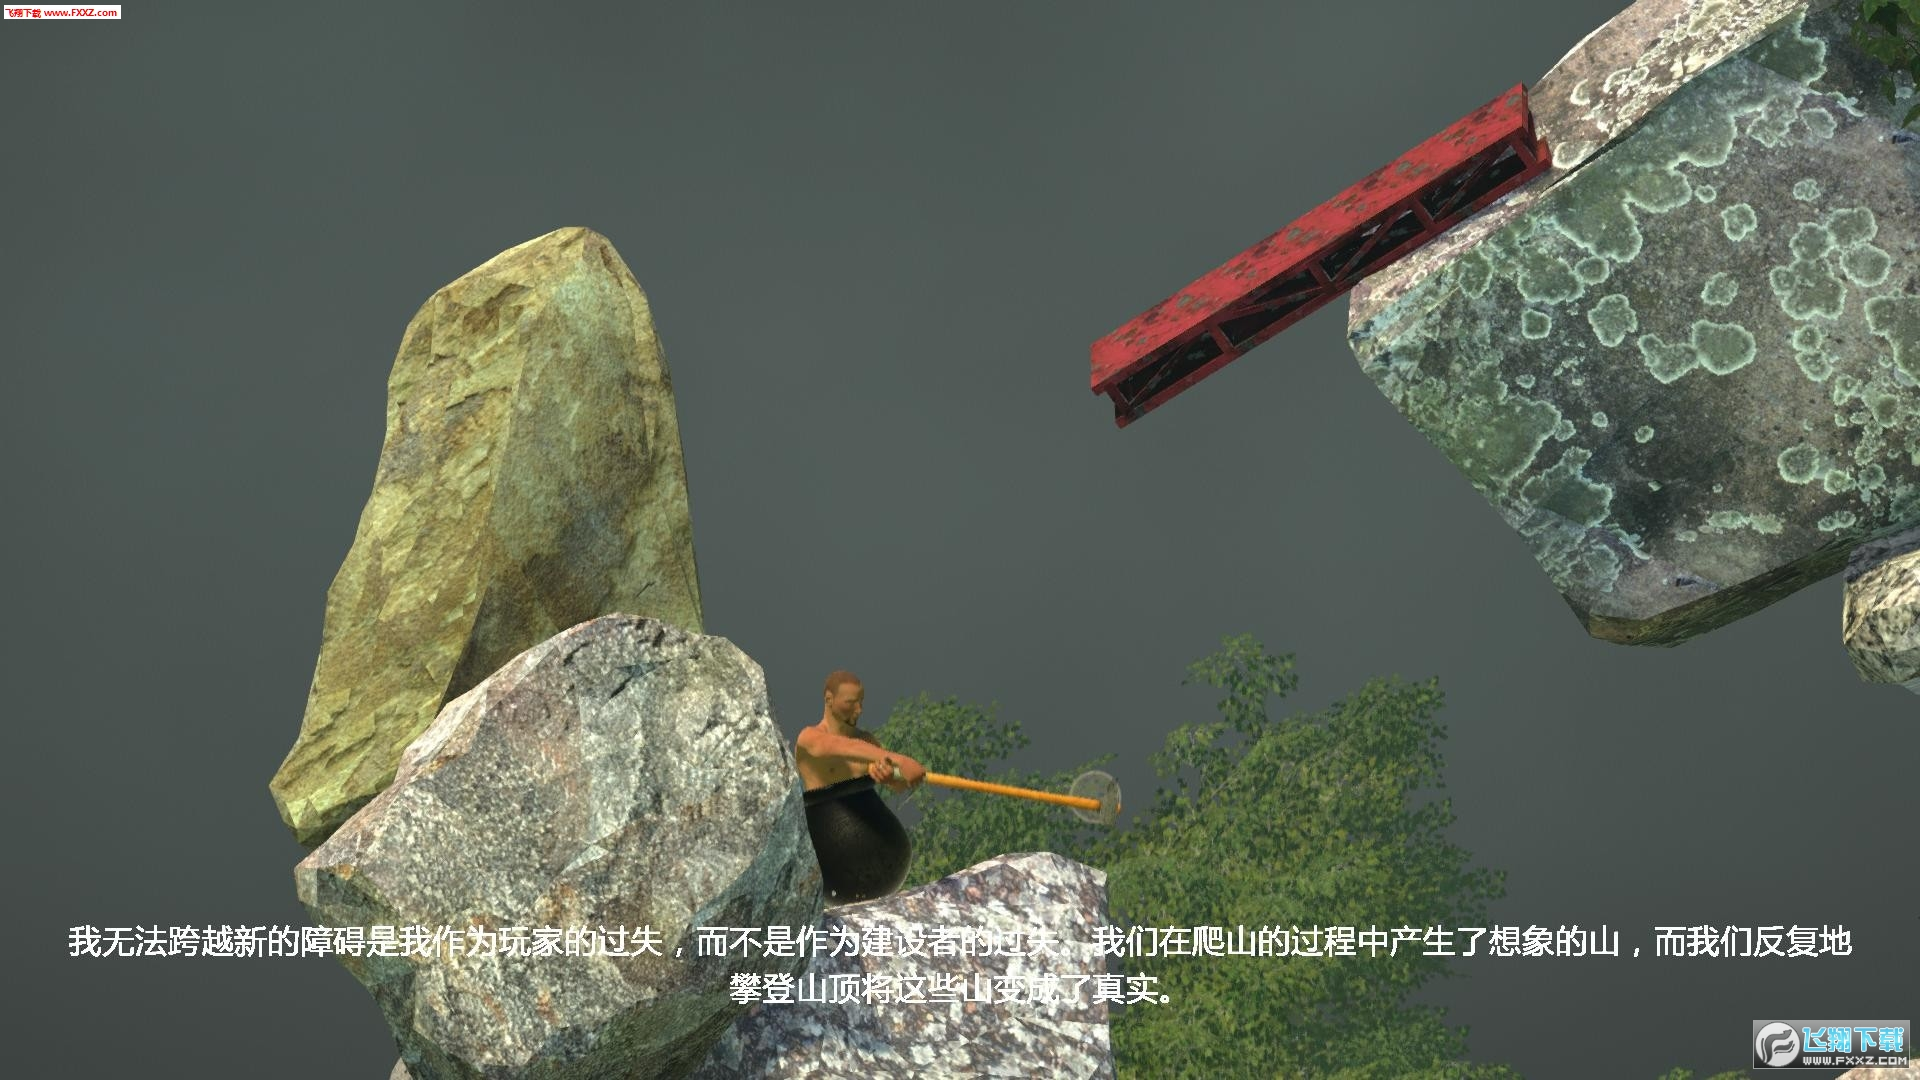 Getting Over It with Bennett Foddy截图2